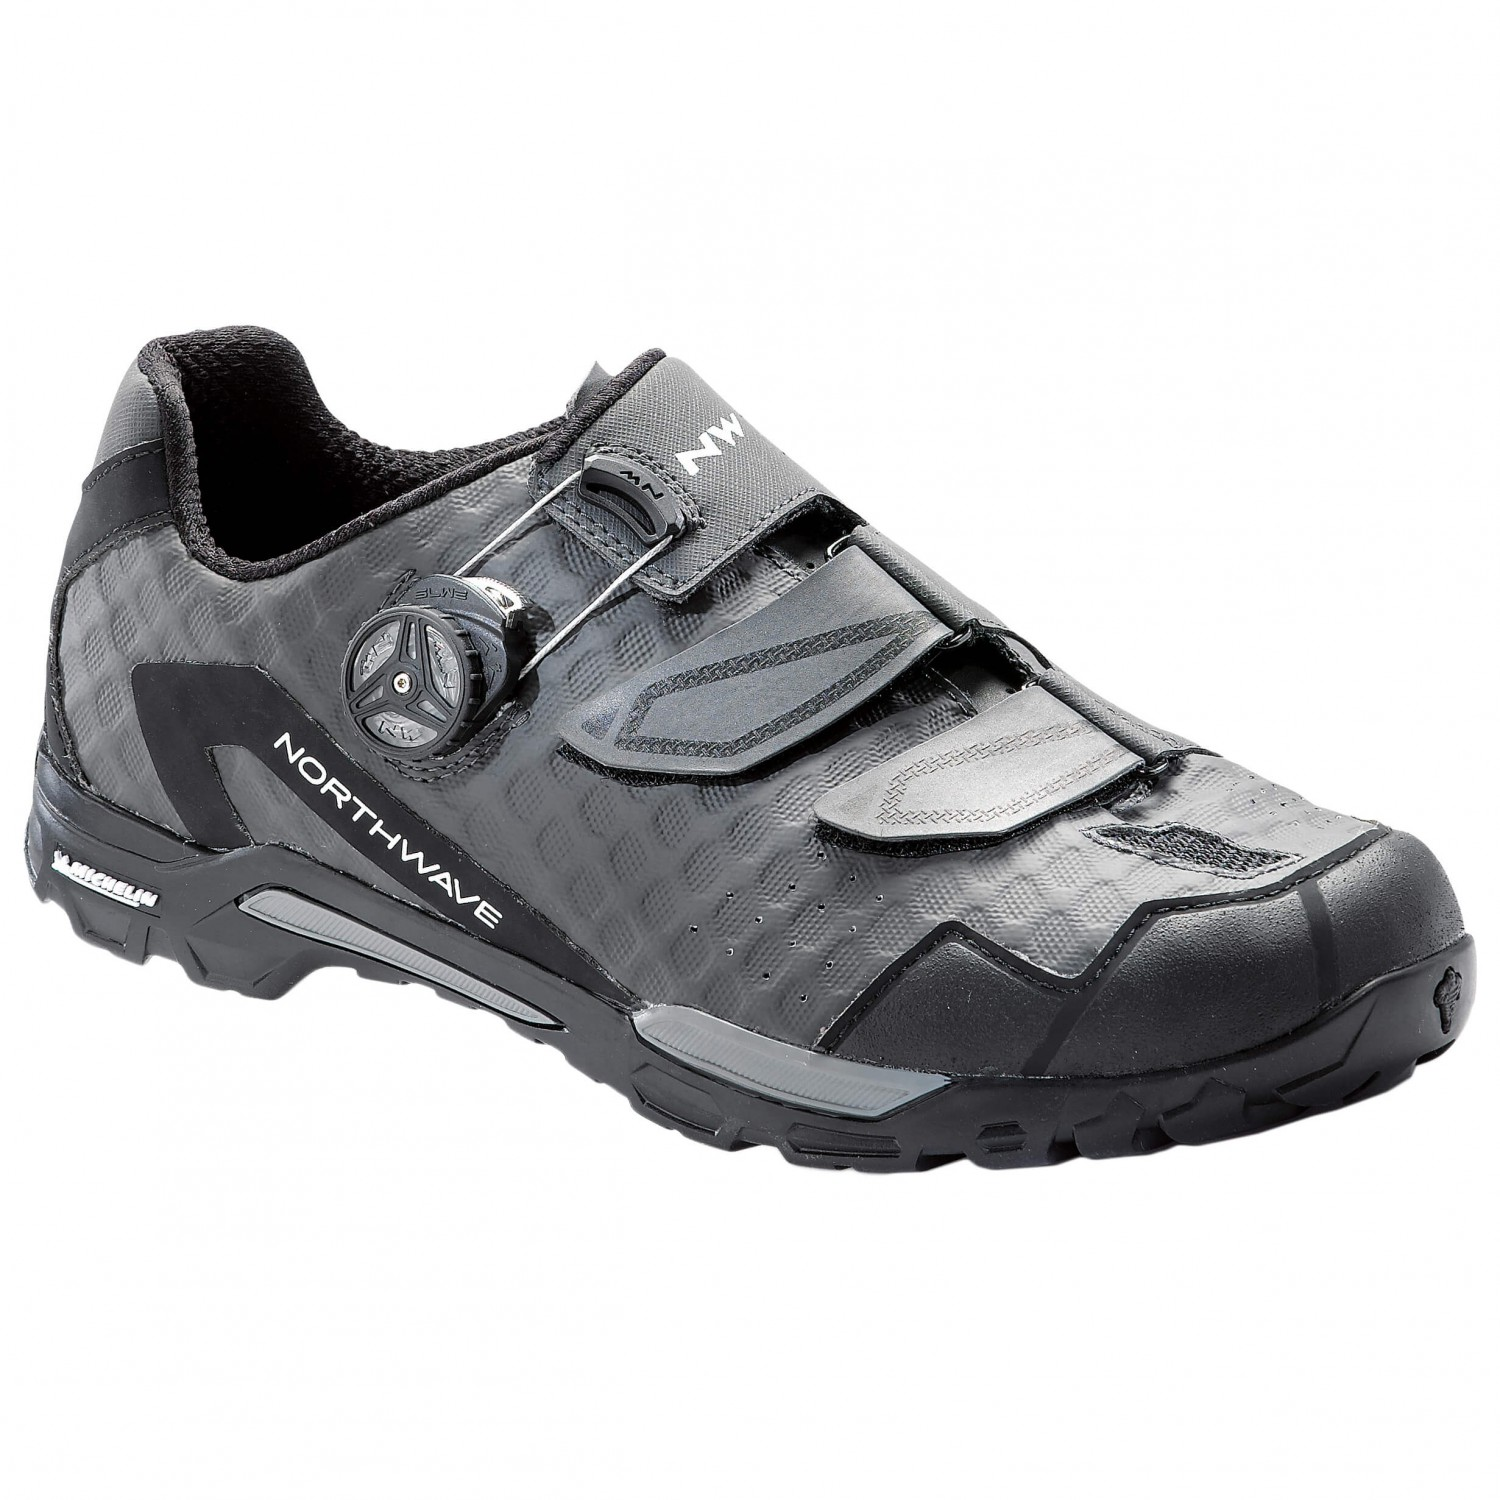 Northwave - Outcross Plus - Radschuhe Anthra / Black